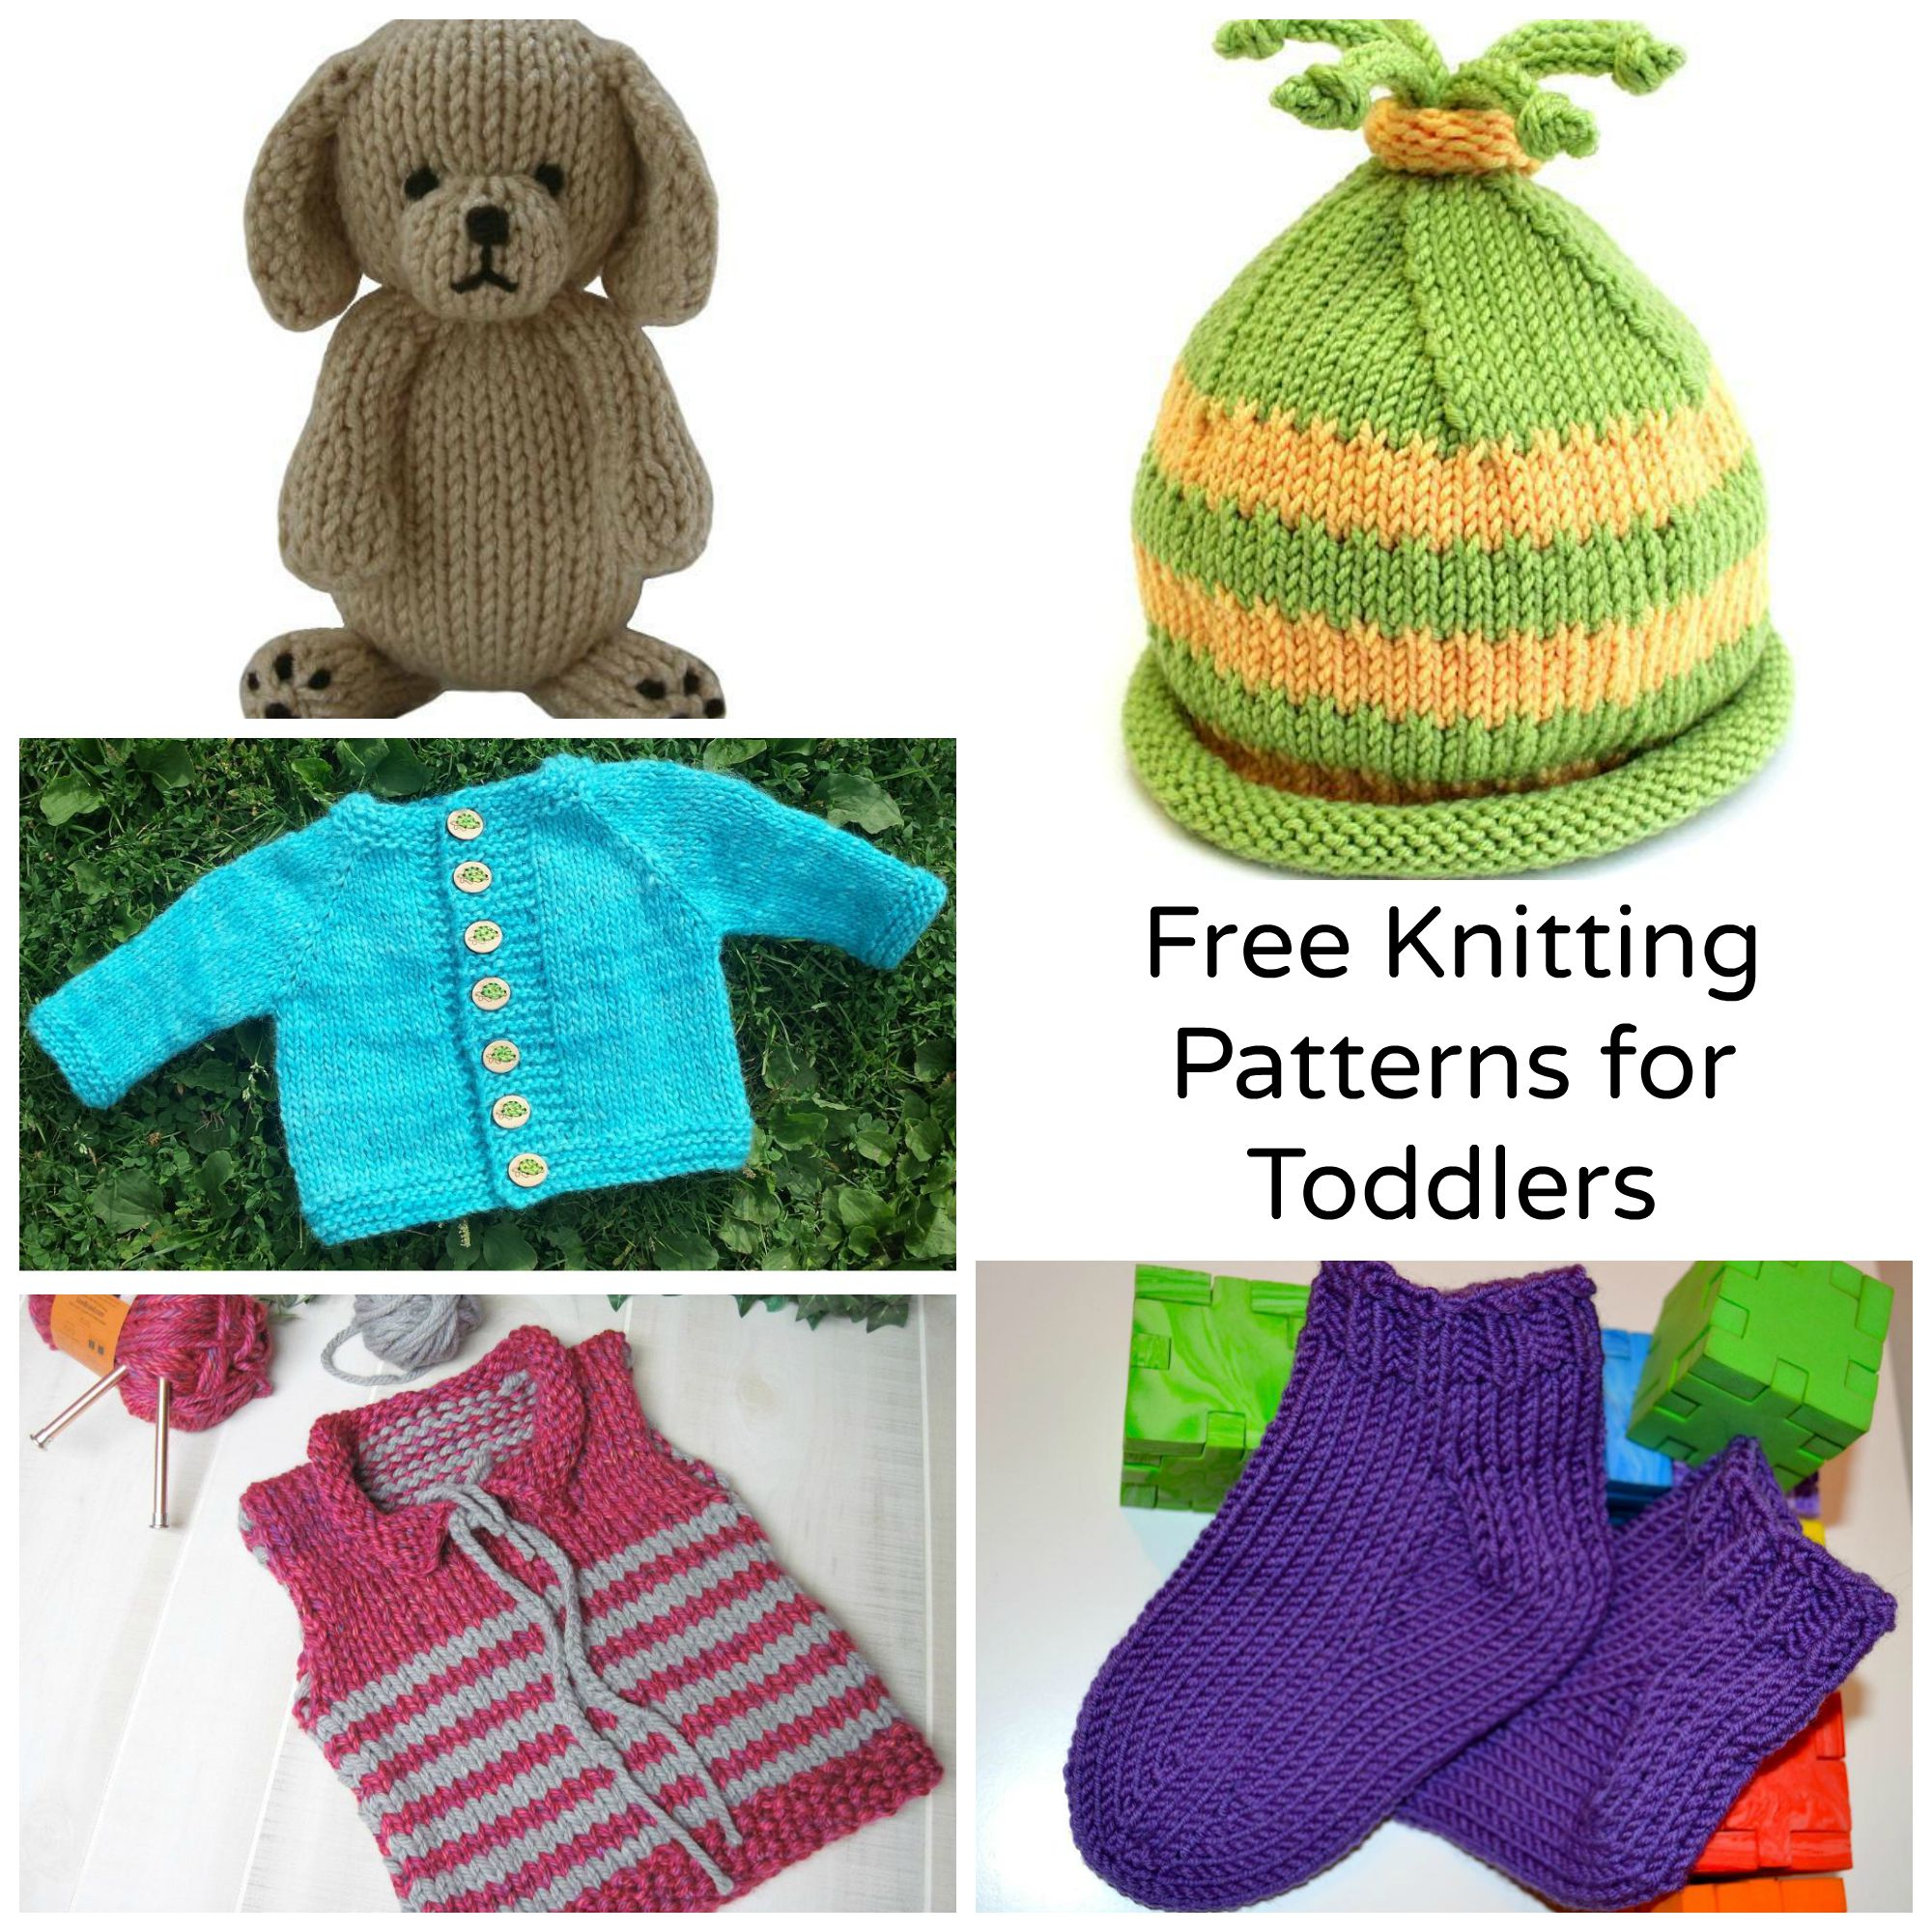 Free Baby Knitting Pattern 7 Sweet Free Knitting Patterns For Toddlers Craftsy